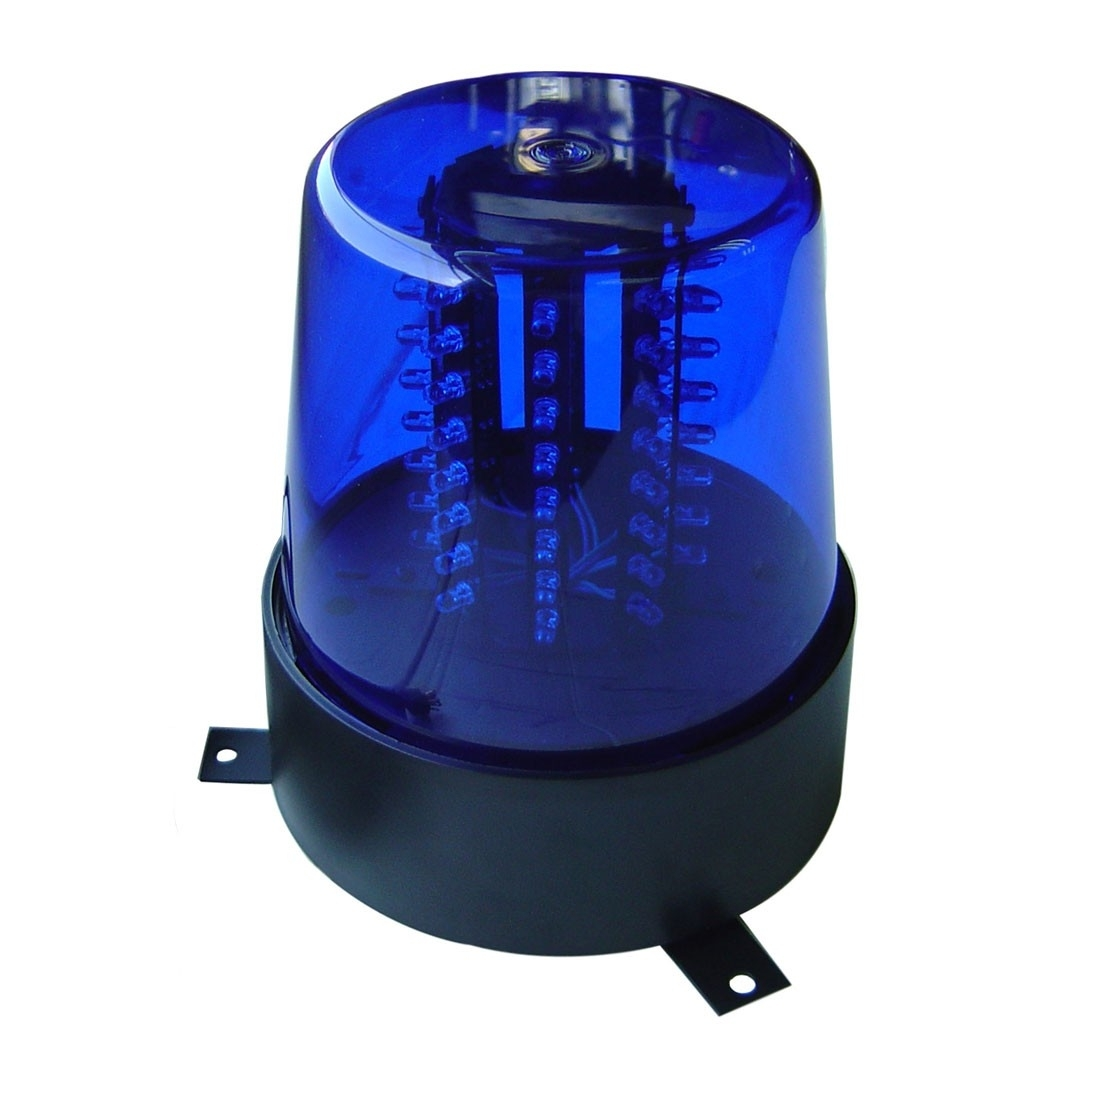 ADJ LED Beacon blue